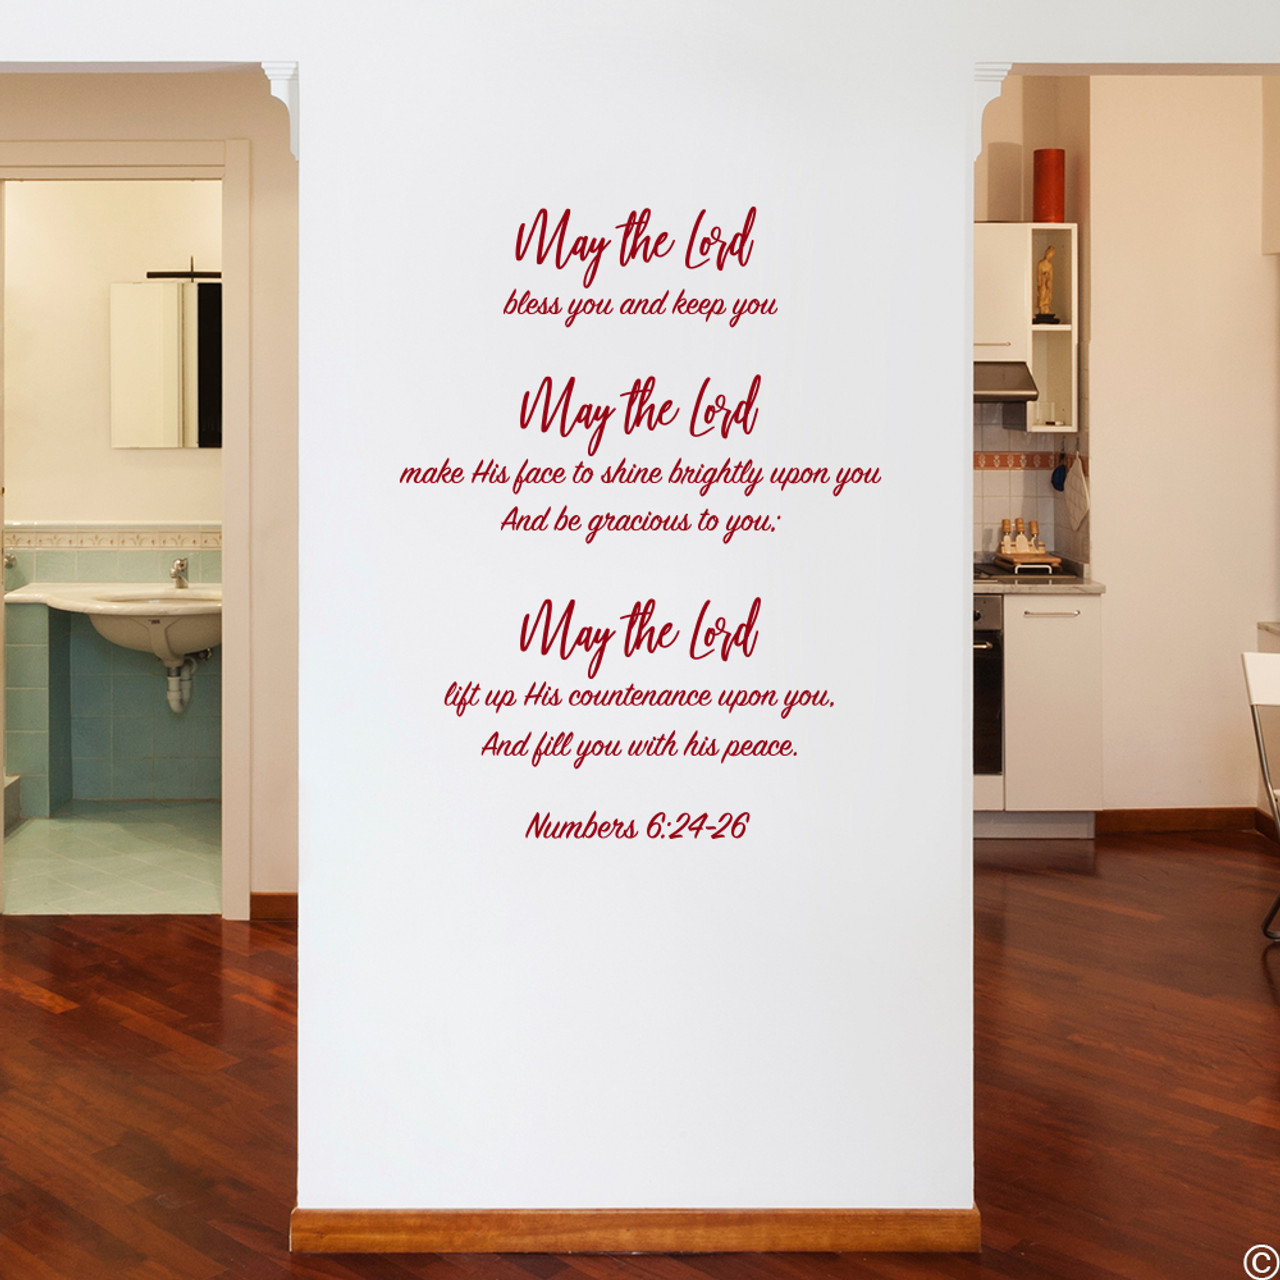 Numbers 6:24-26 vinyl wall decal quote in dark red